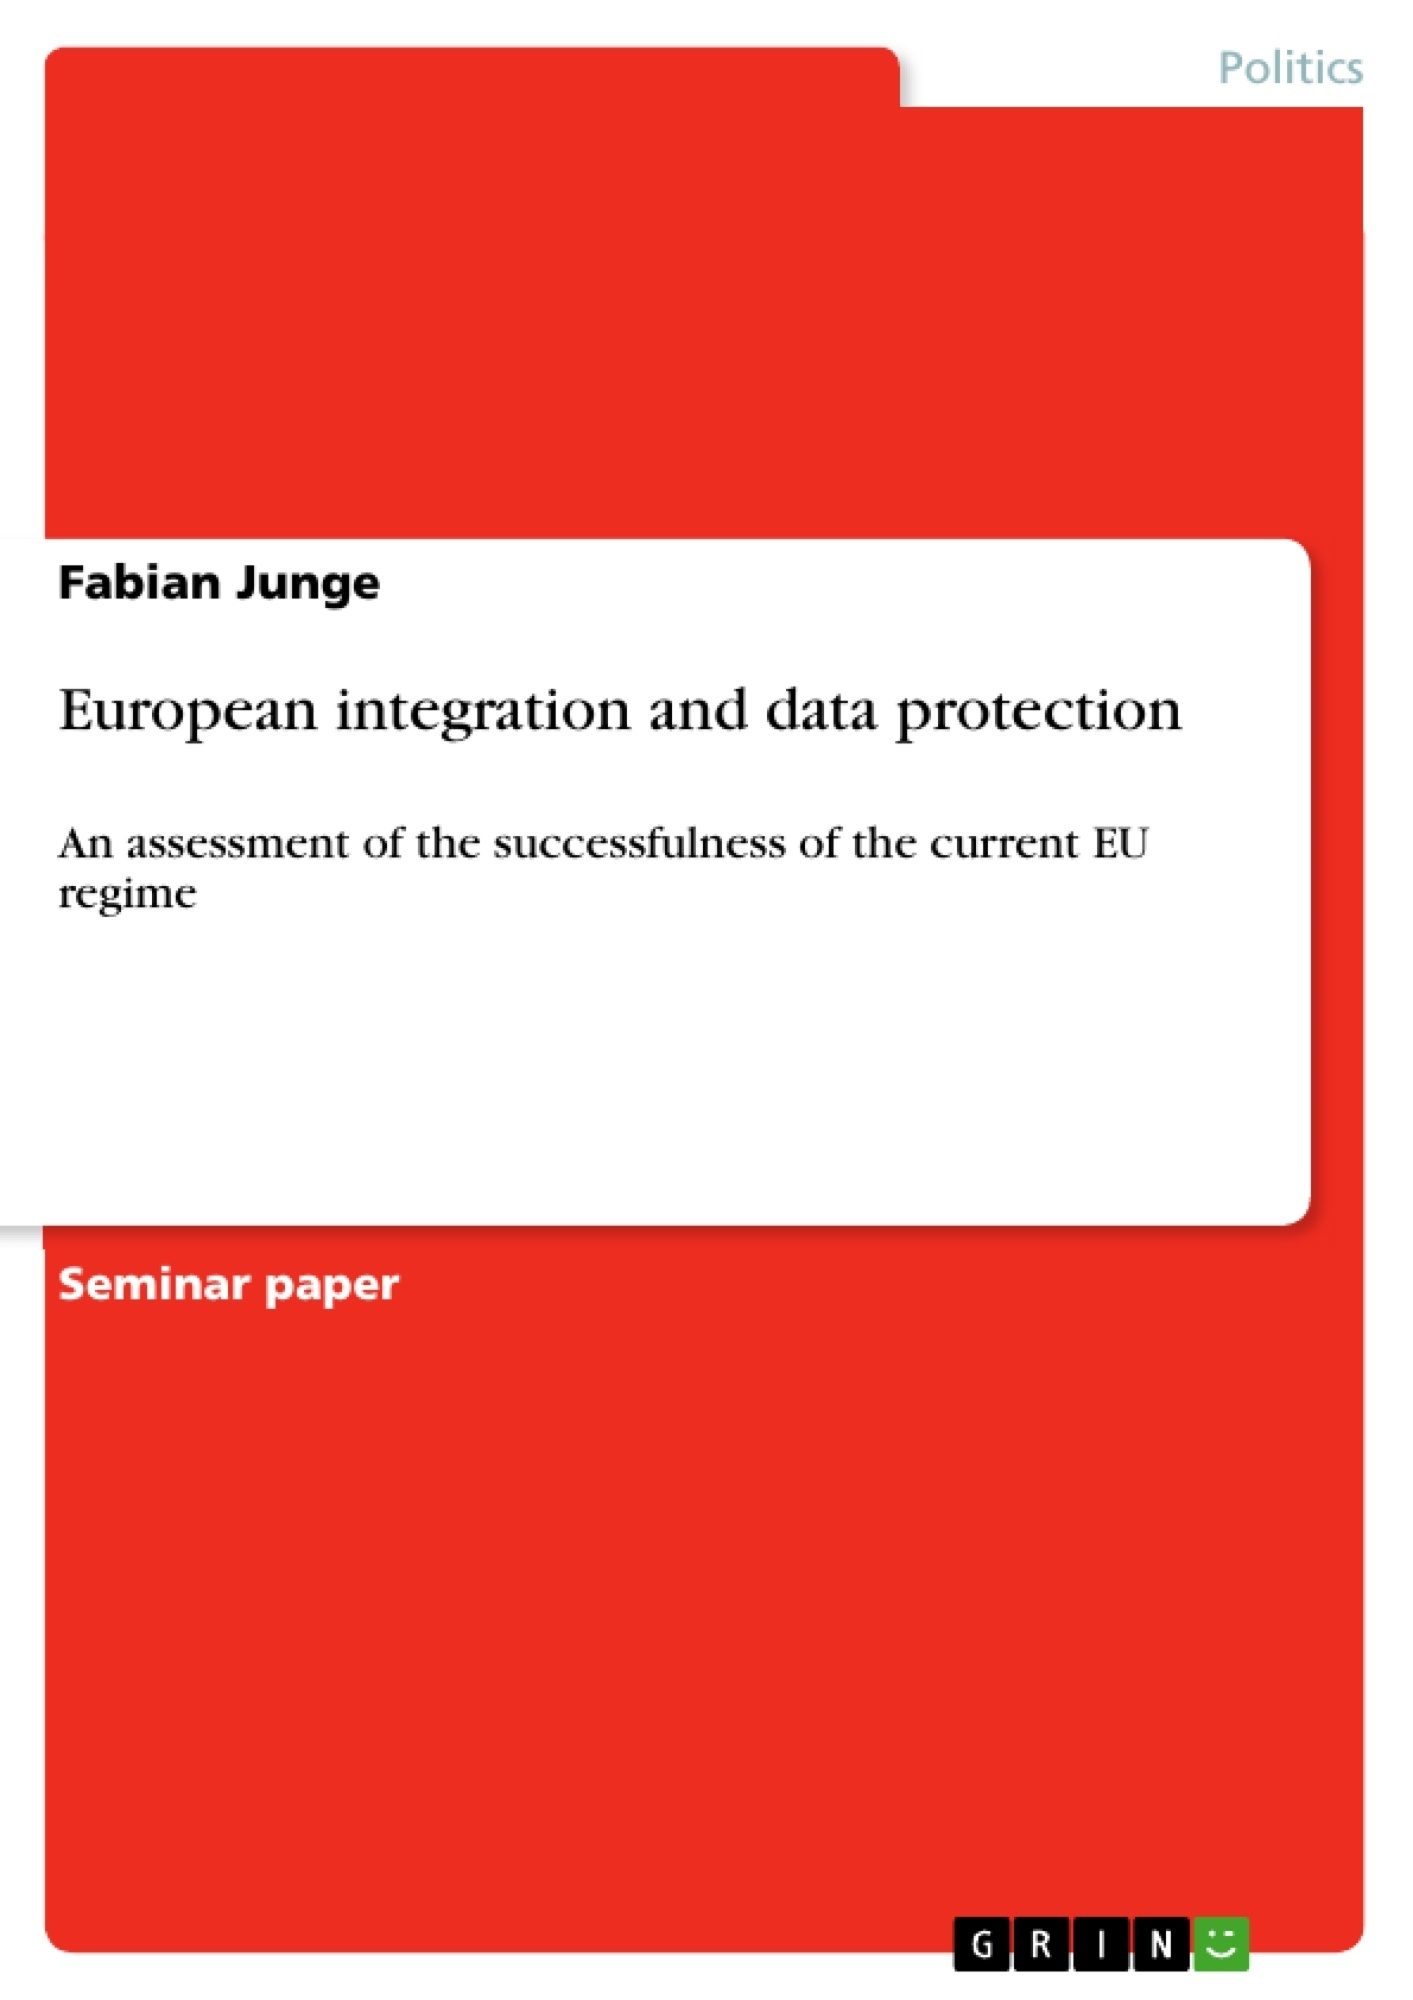 European integration and data protection publish your masters upload your own papers earn money and win an iphone x fandeluxe Images